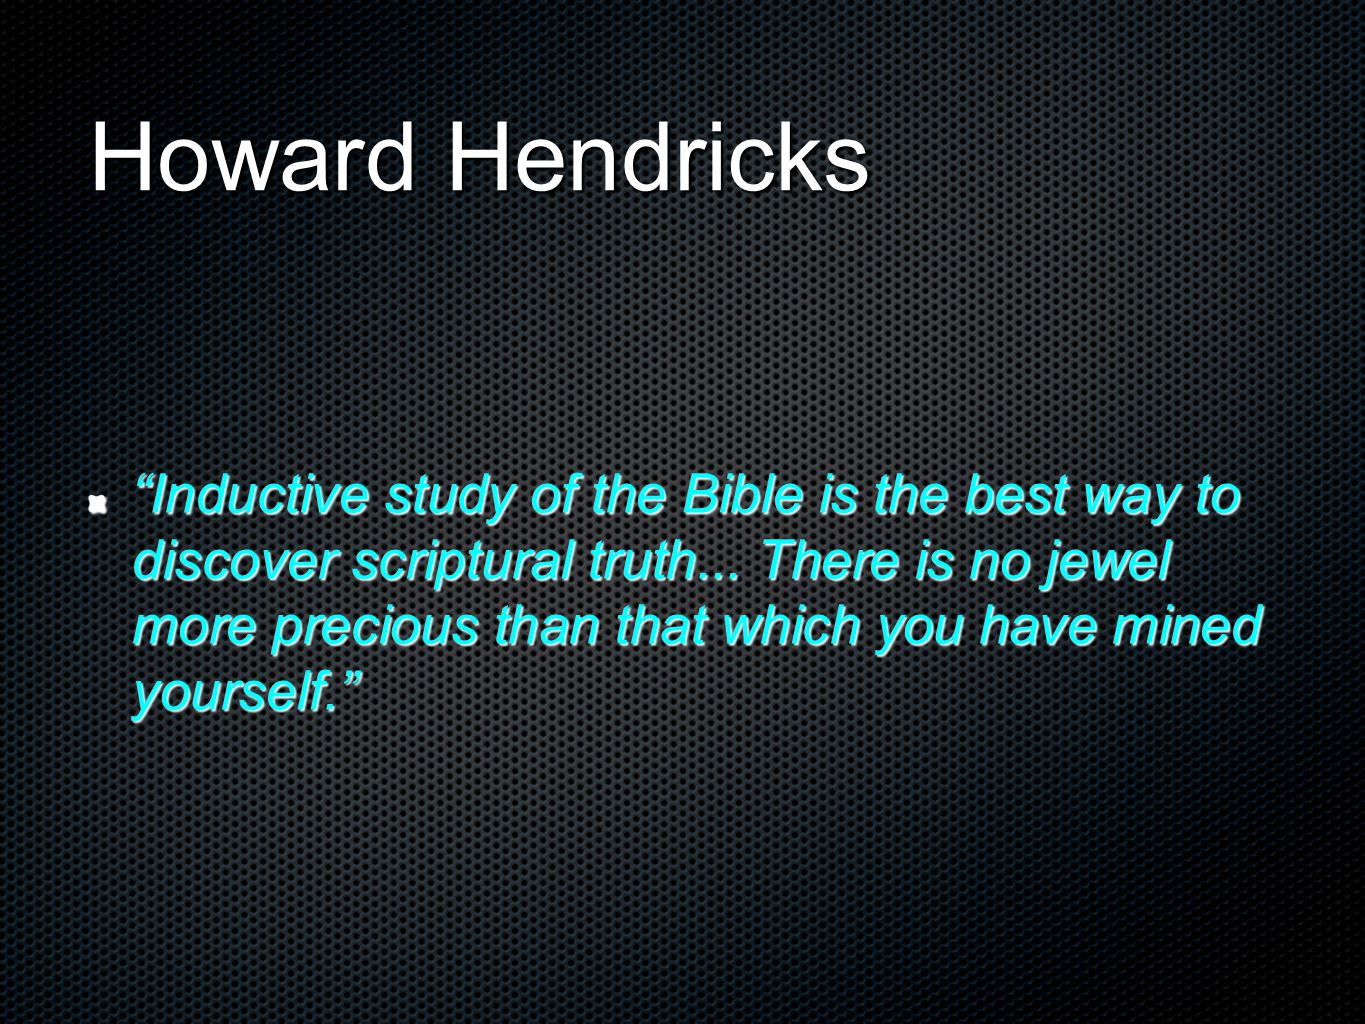 """Howard Hendricks """"Inductive study of the Bible is the best way to discover scriptural truth... There is no jewel more precious than that which you hav"""